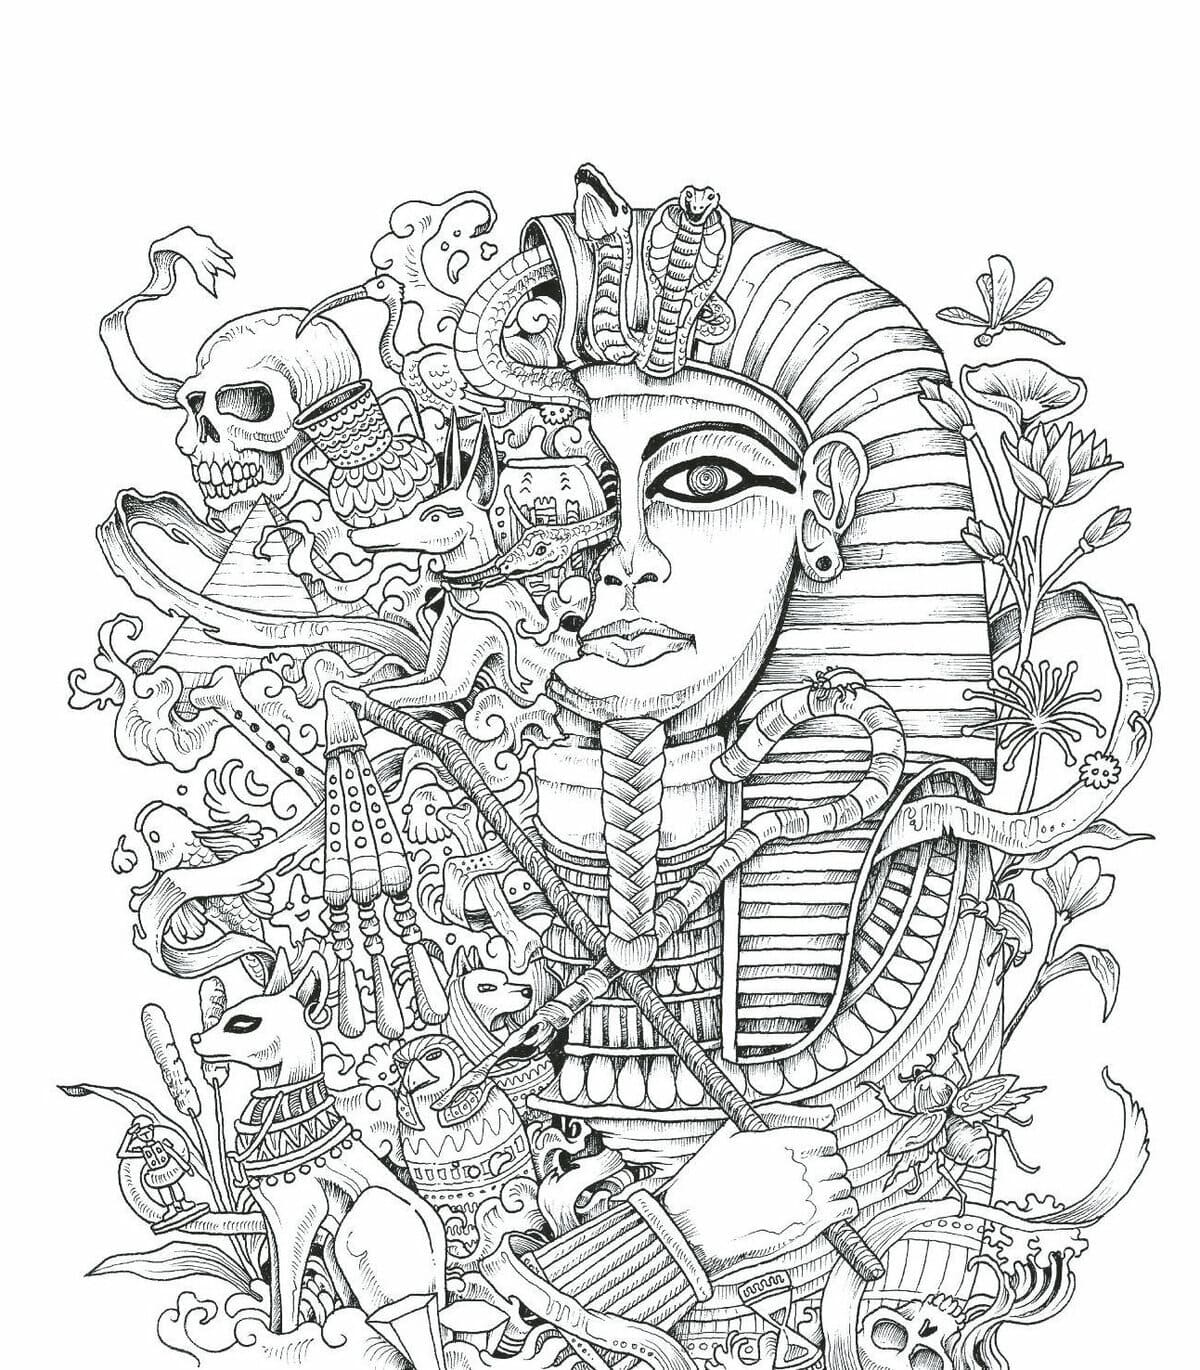 Cool Coloring Pages. 70 Really Cool Images for Free Printable